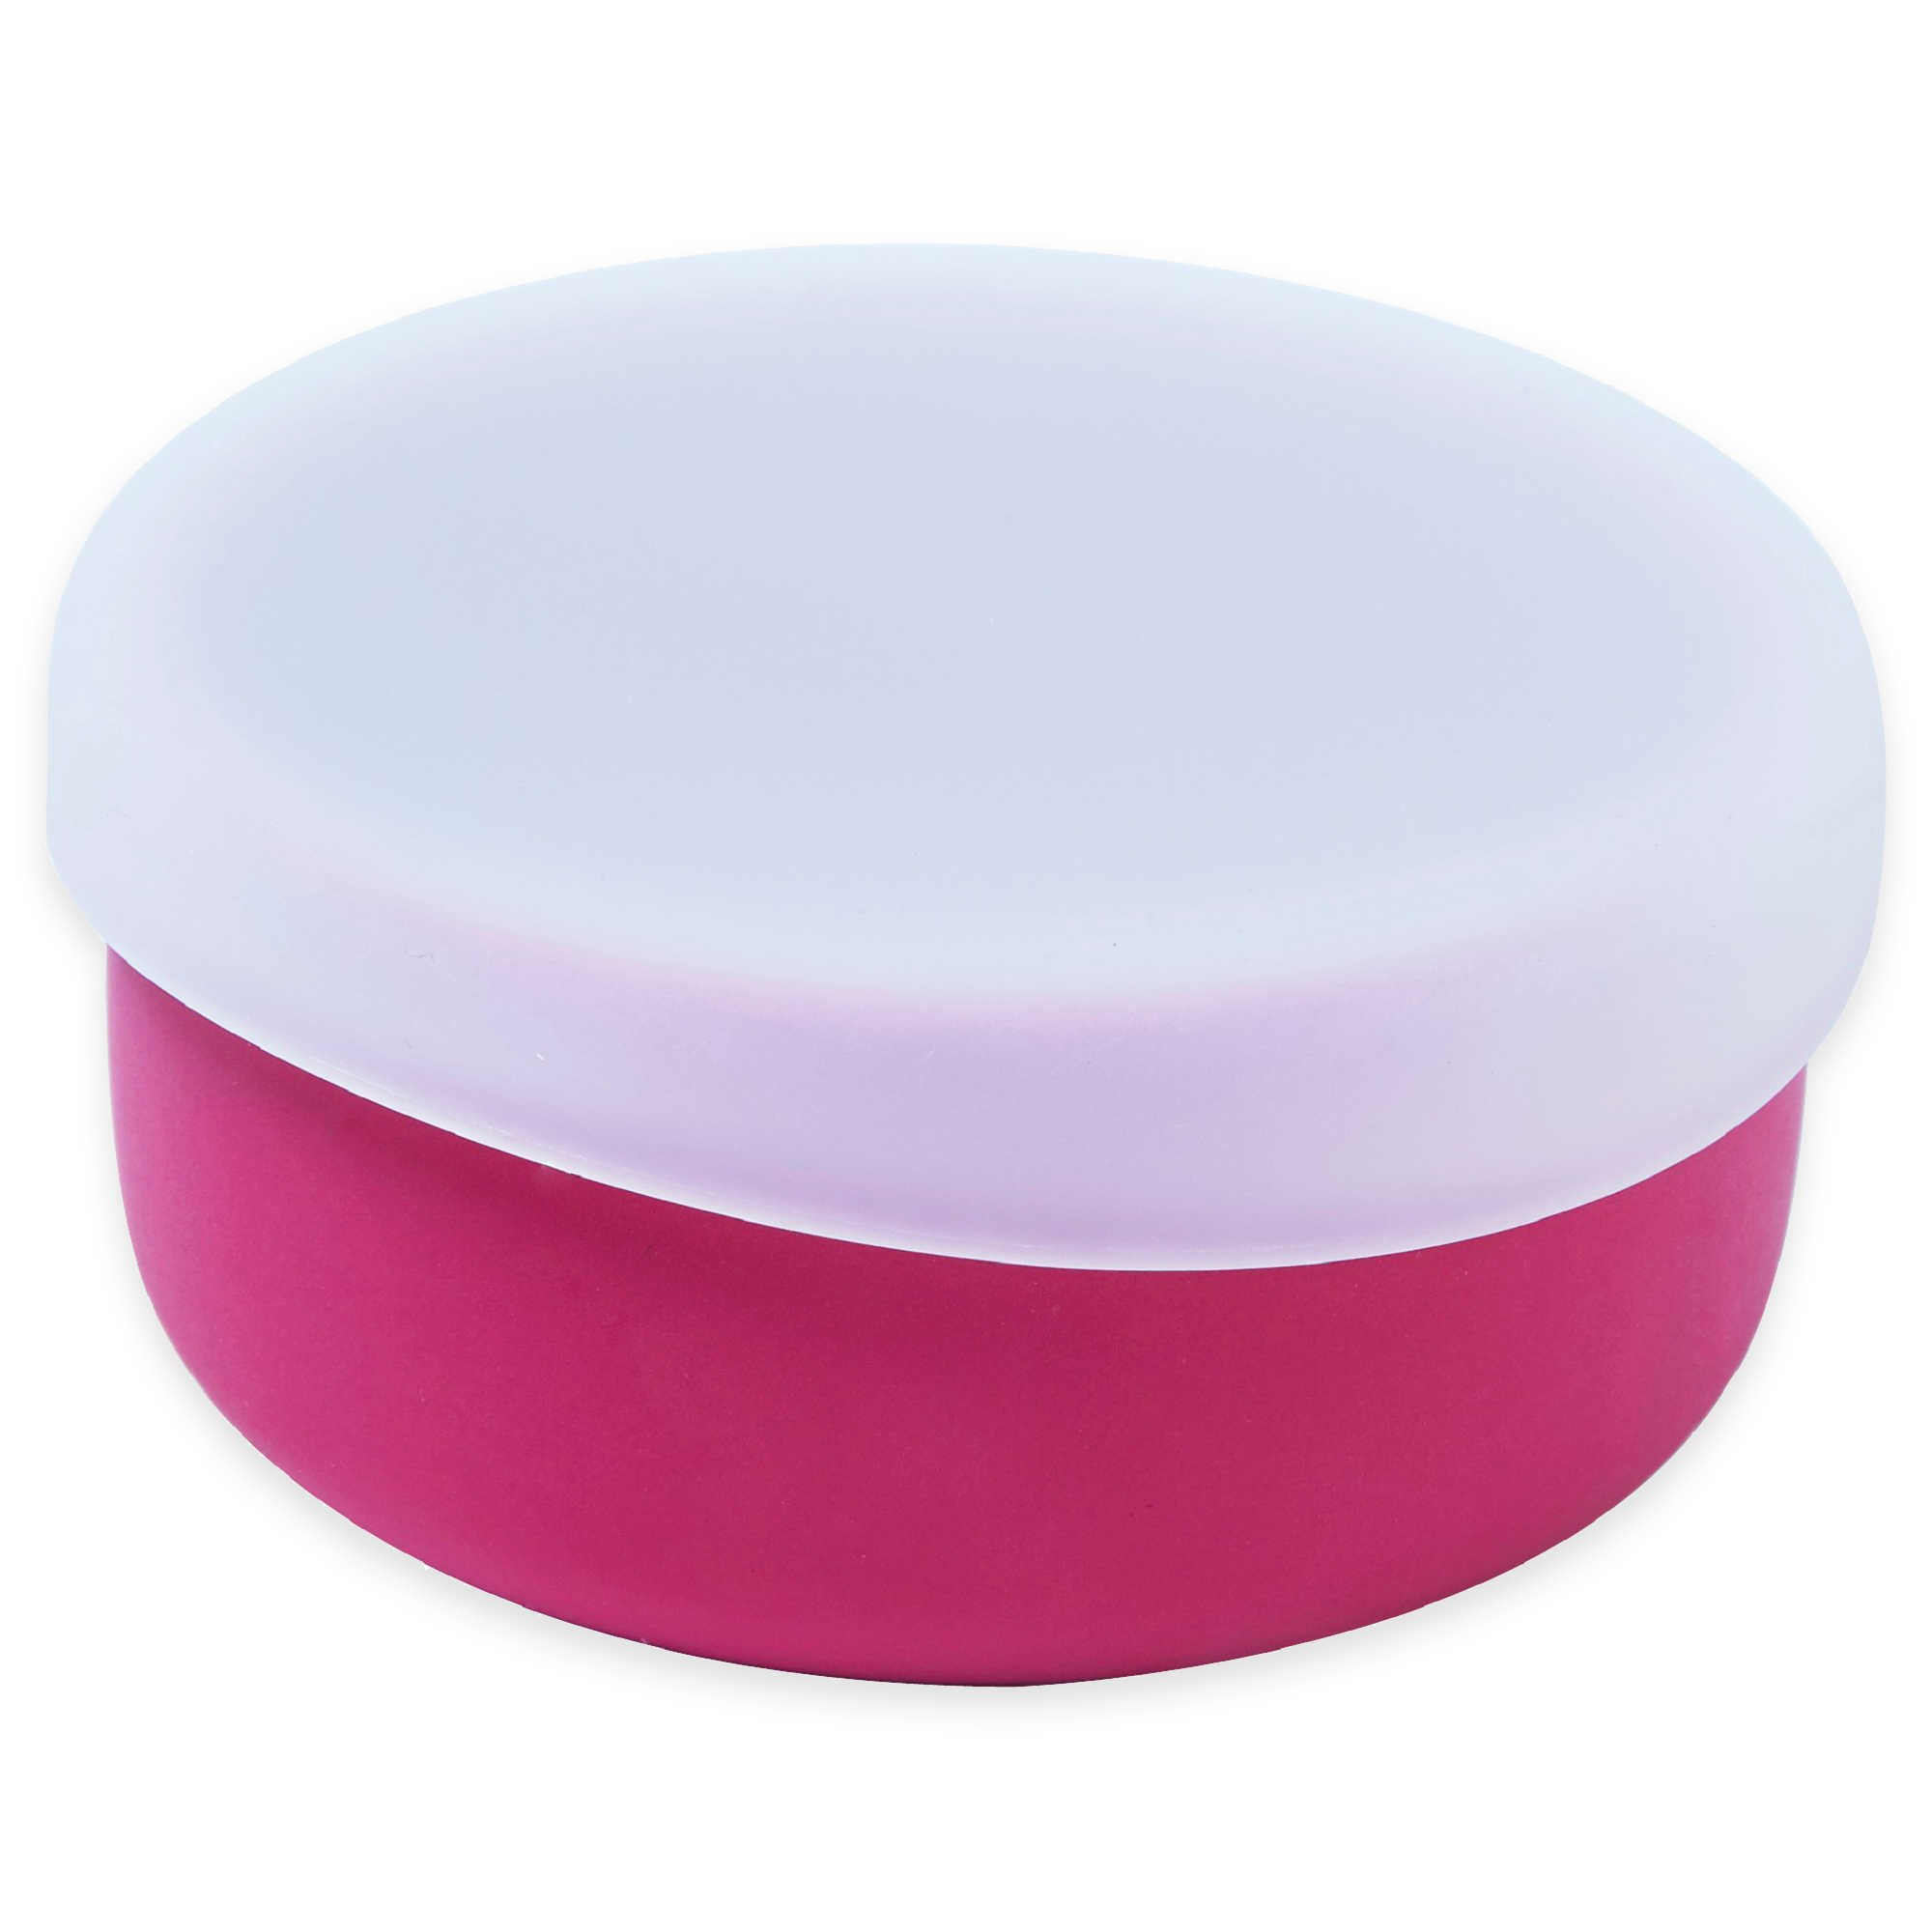 Modern Twist 4.85 oz. Silicone Bowl with Lid in Pink (3 Packs)